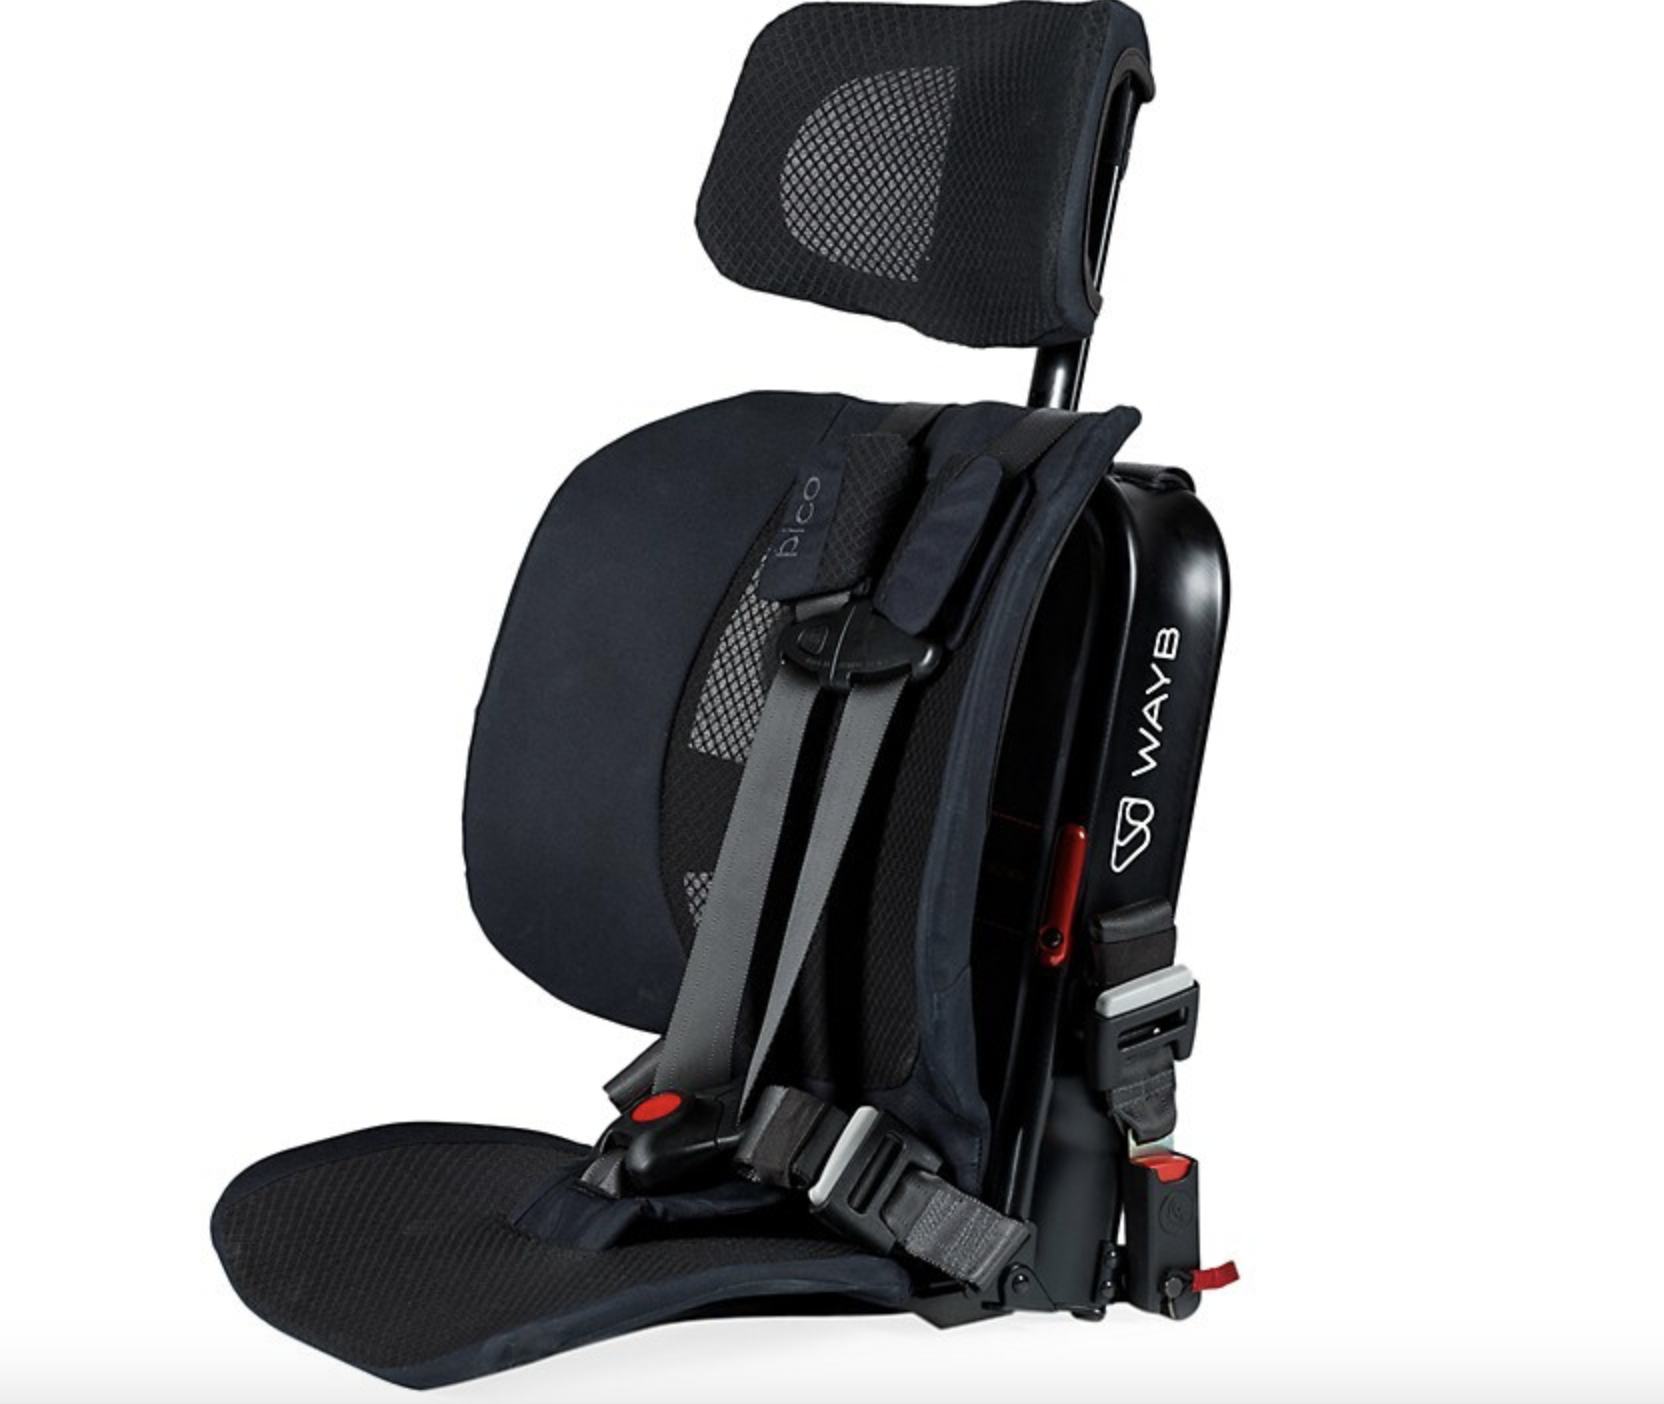 The Uber CarSeat